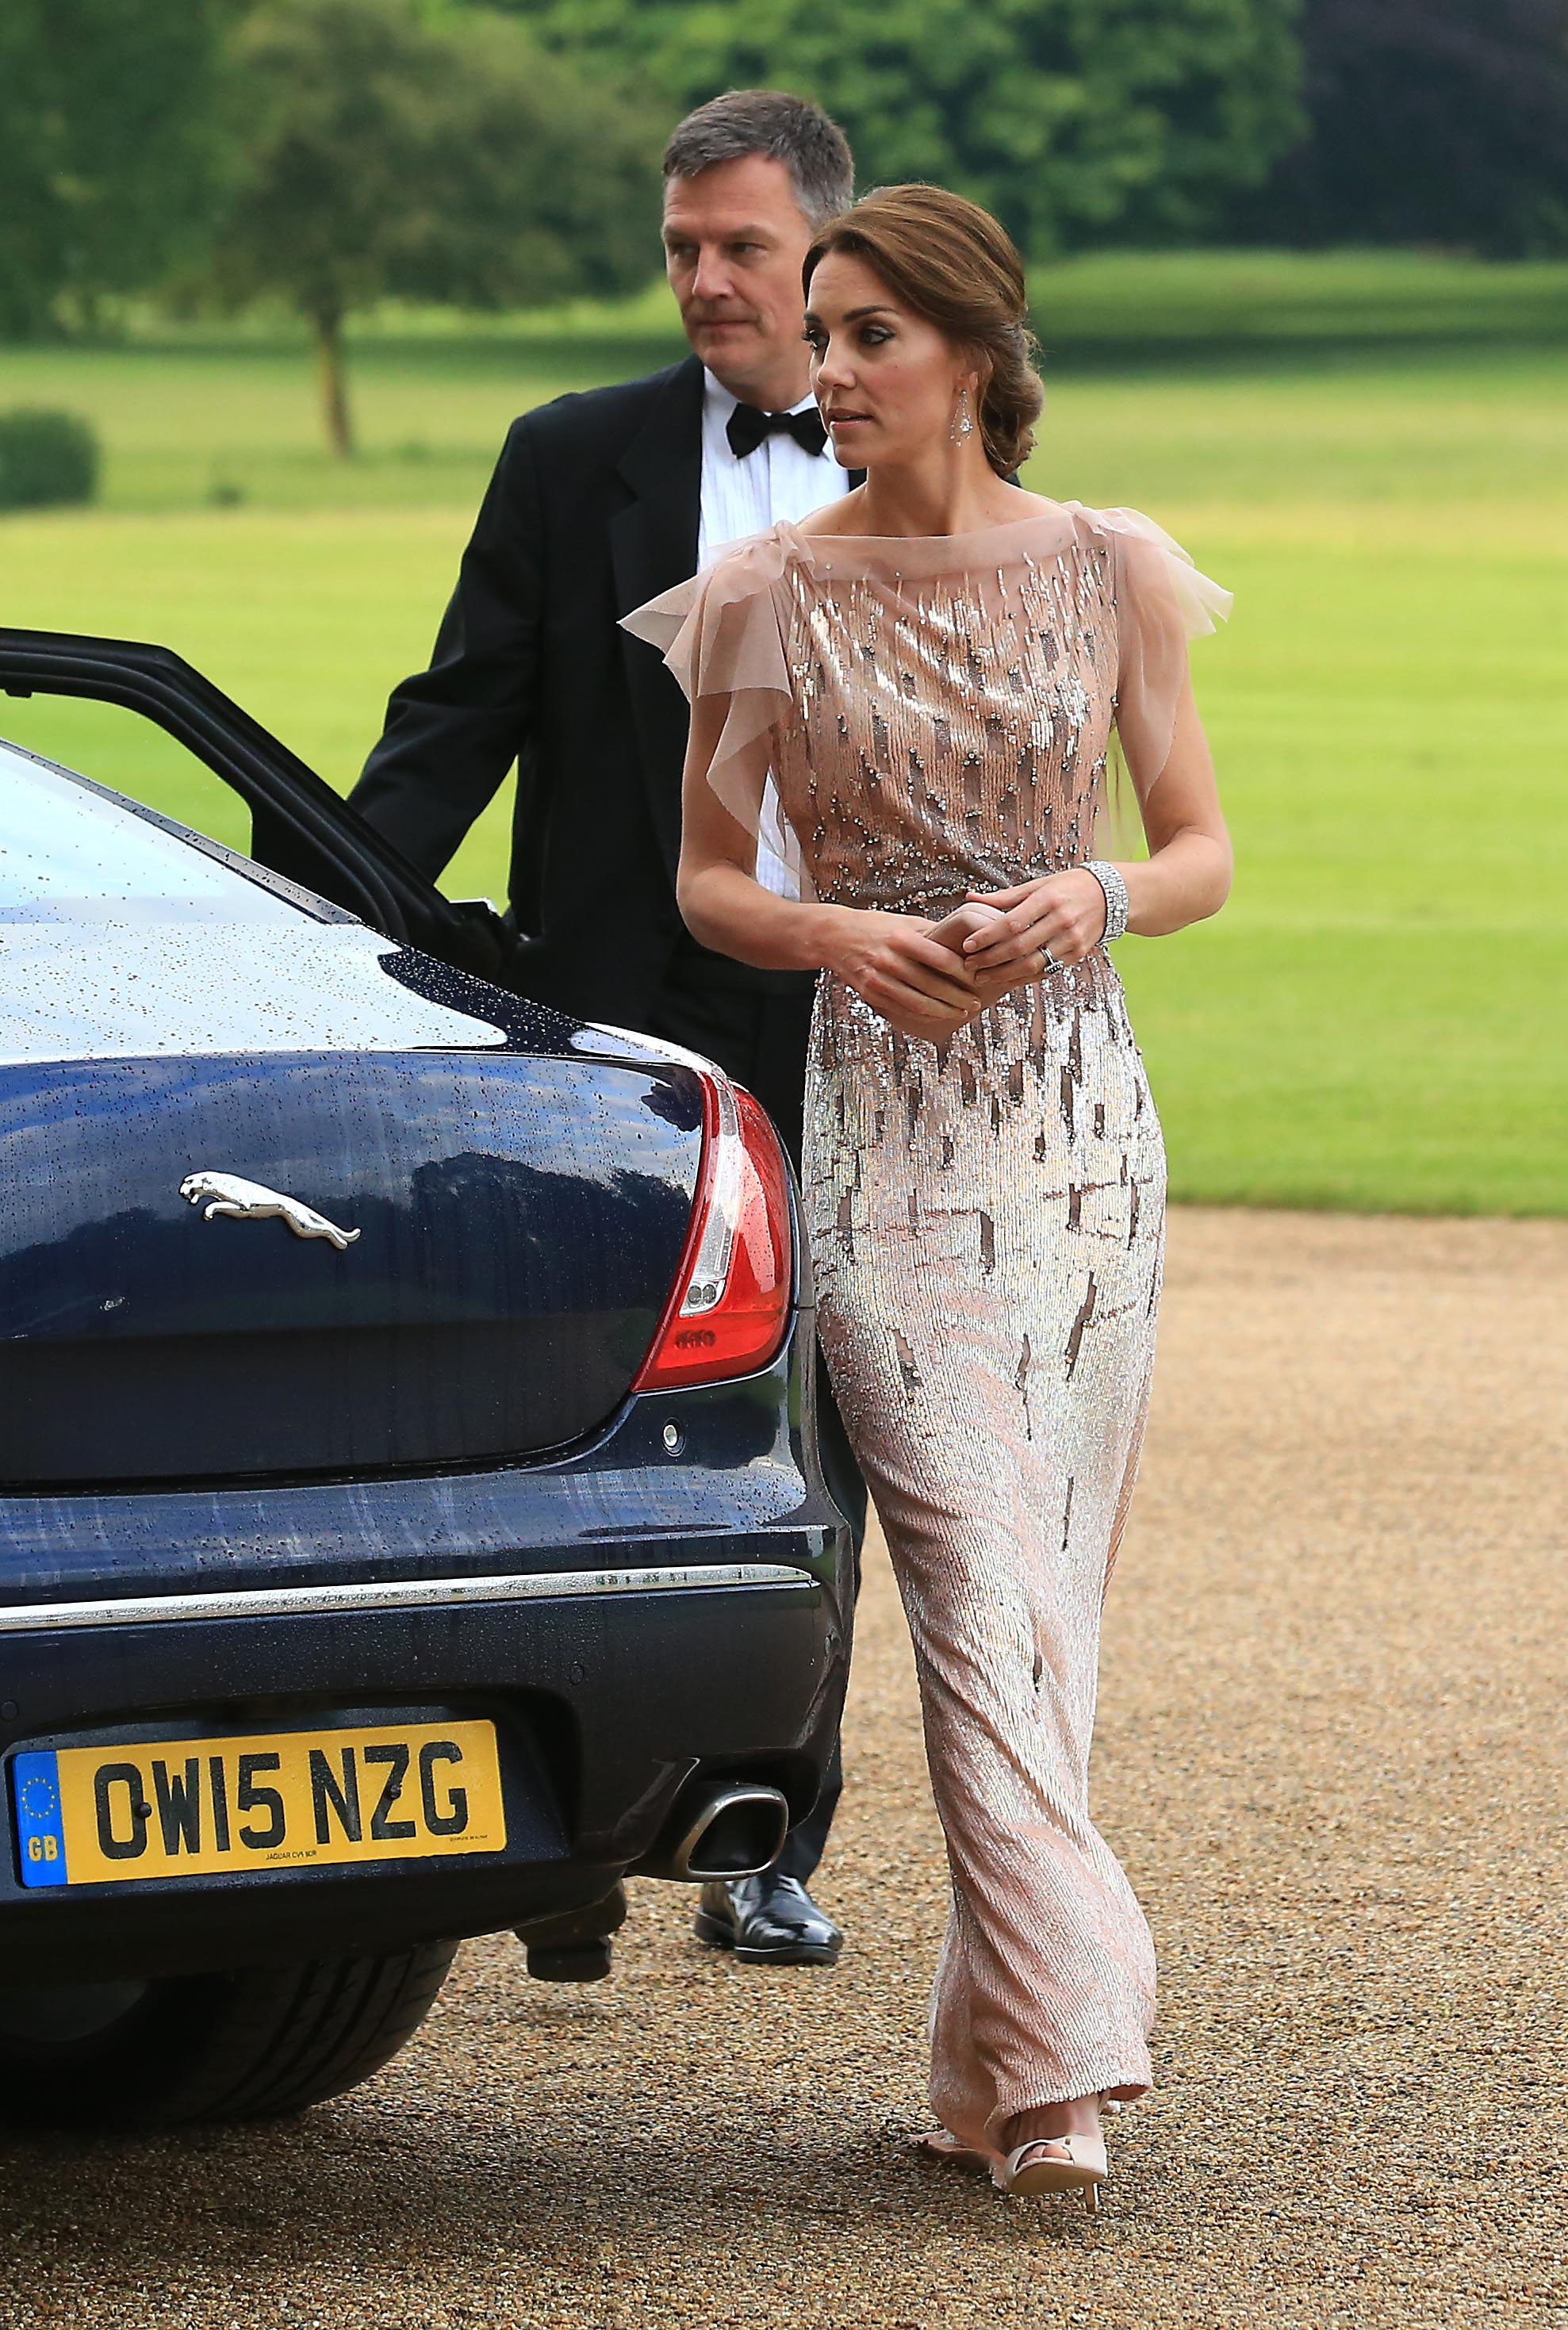 Catherine, Duchess of Cambridge, attends a gala dinner in support of East Anglia's Children's Hospices' nook appeal at Houghton Hall in King's Lynn, England, on June 22, 2016.